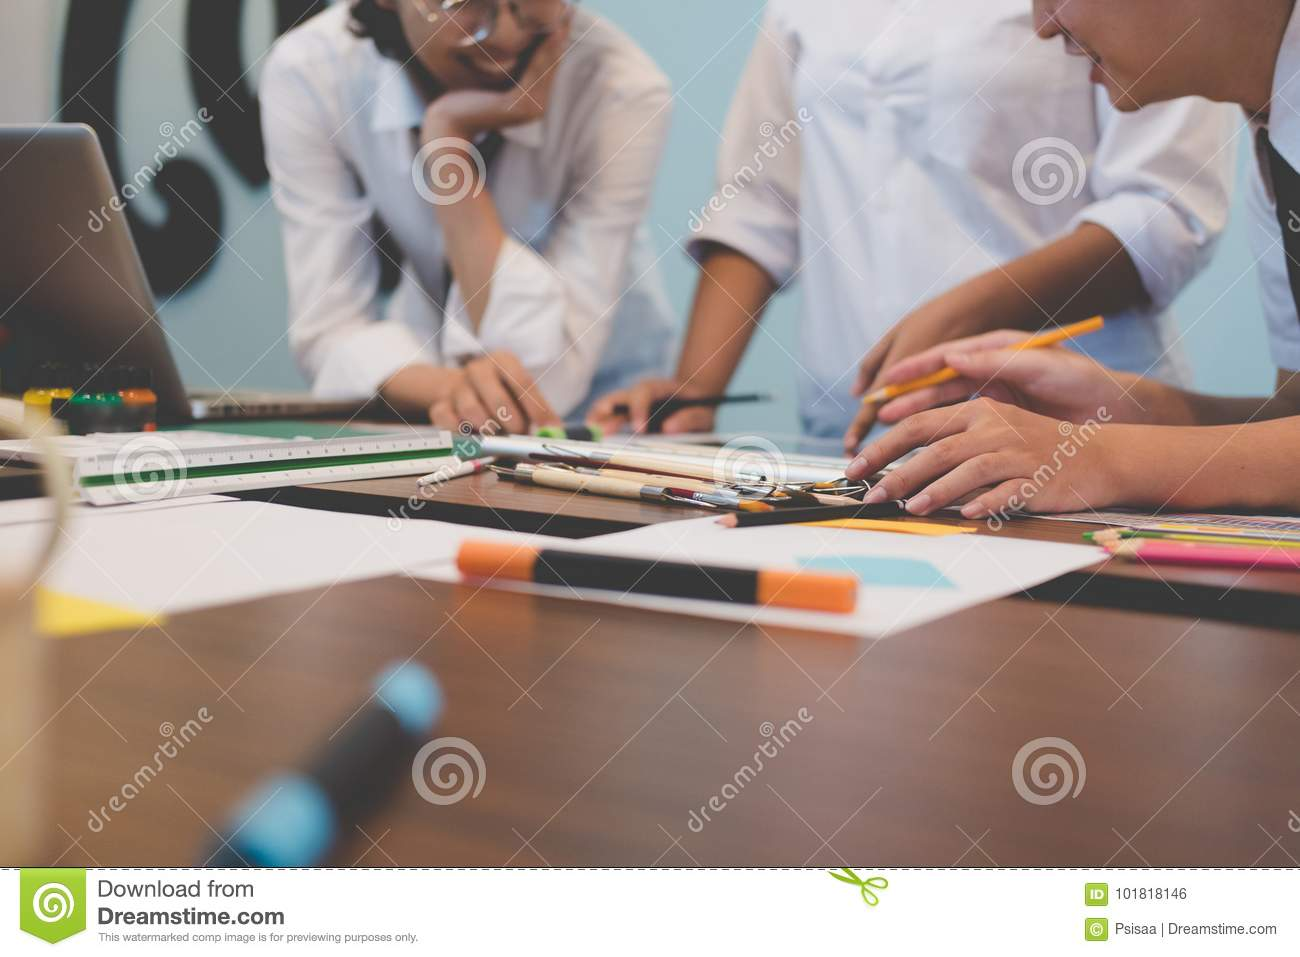 interior designer working with graphic tablet at workplace. artist discussing design and idea at office. business people